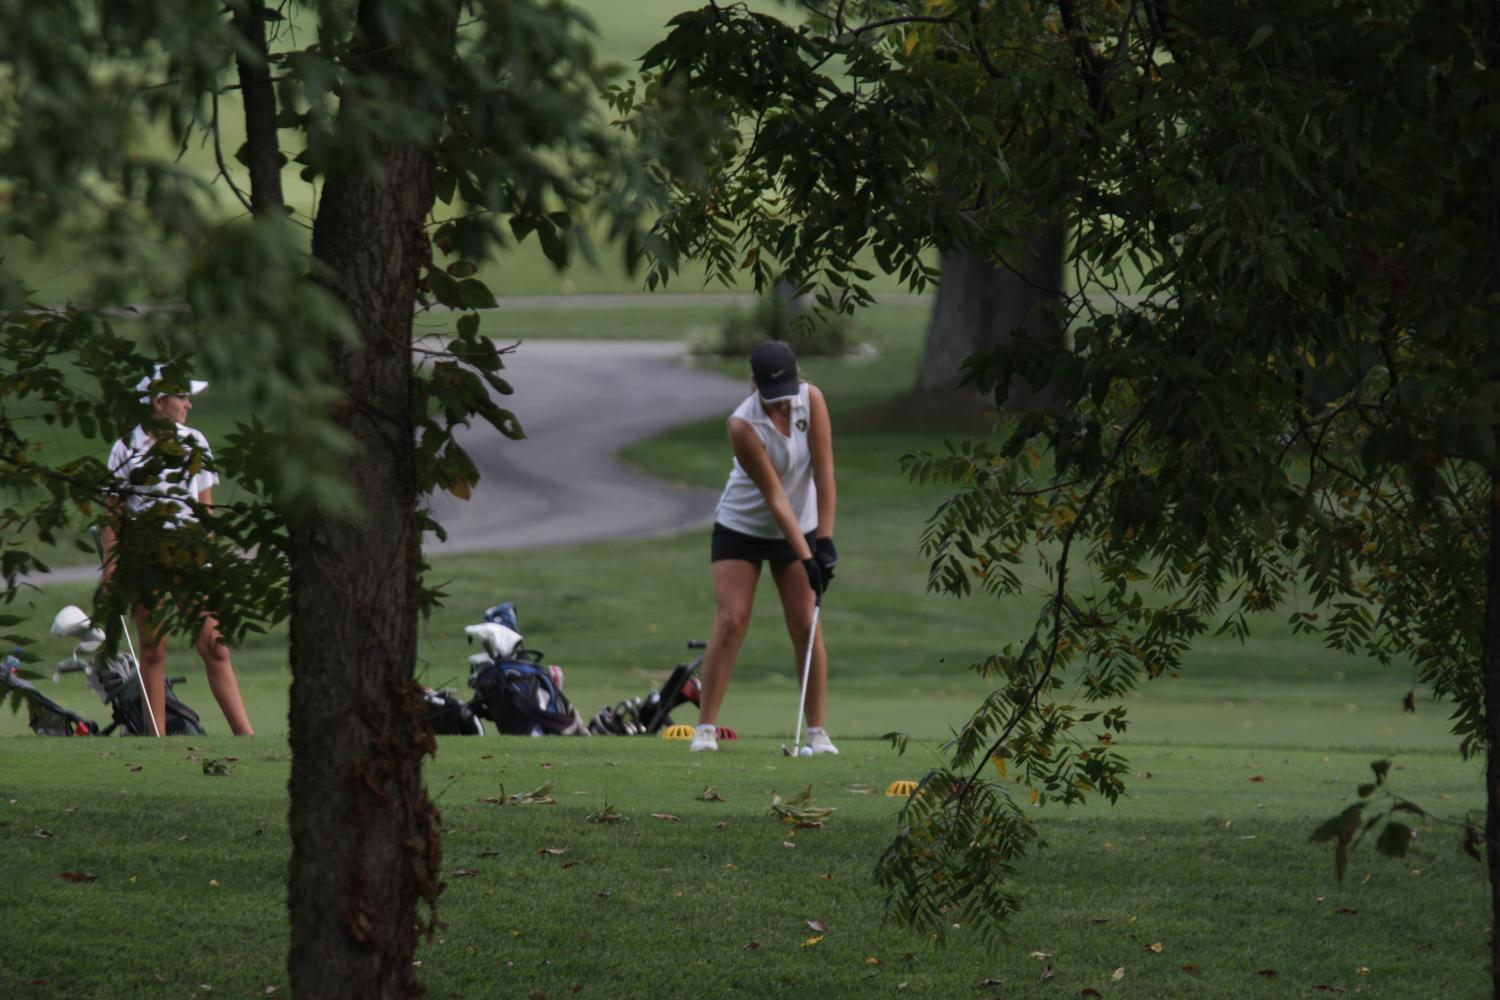 Senior Briana Schmidt takes her stance to tee off at Lake Forest Golf Course    Aug. 31 during her tri-match between Timberland and St. Dominic. Schmidt has been playing varsity golf for FHN since freshman year.